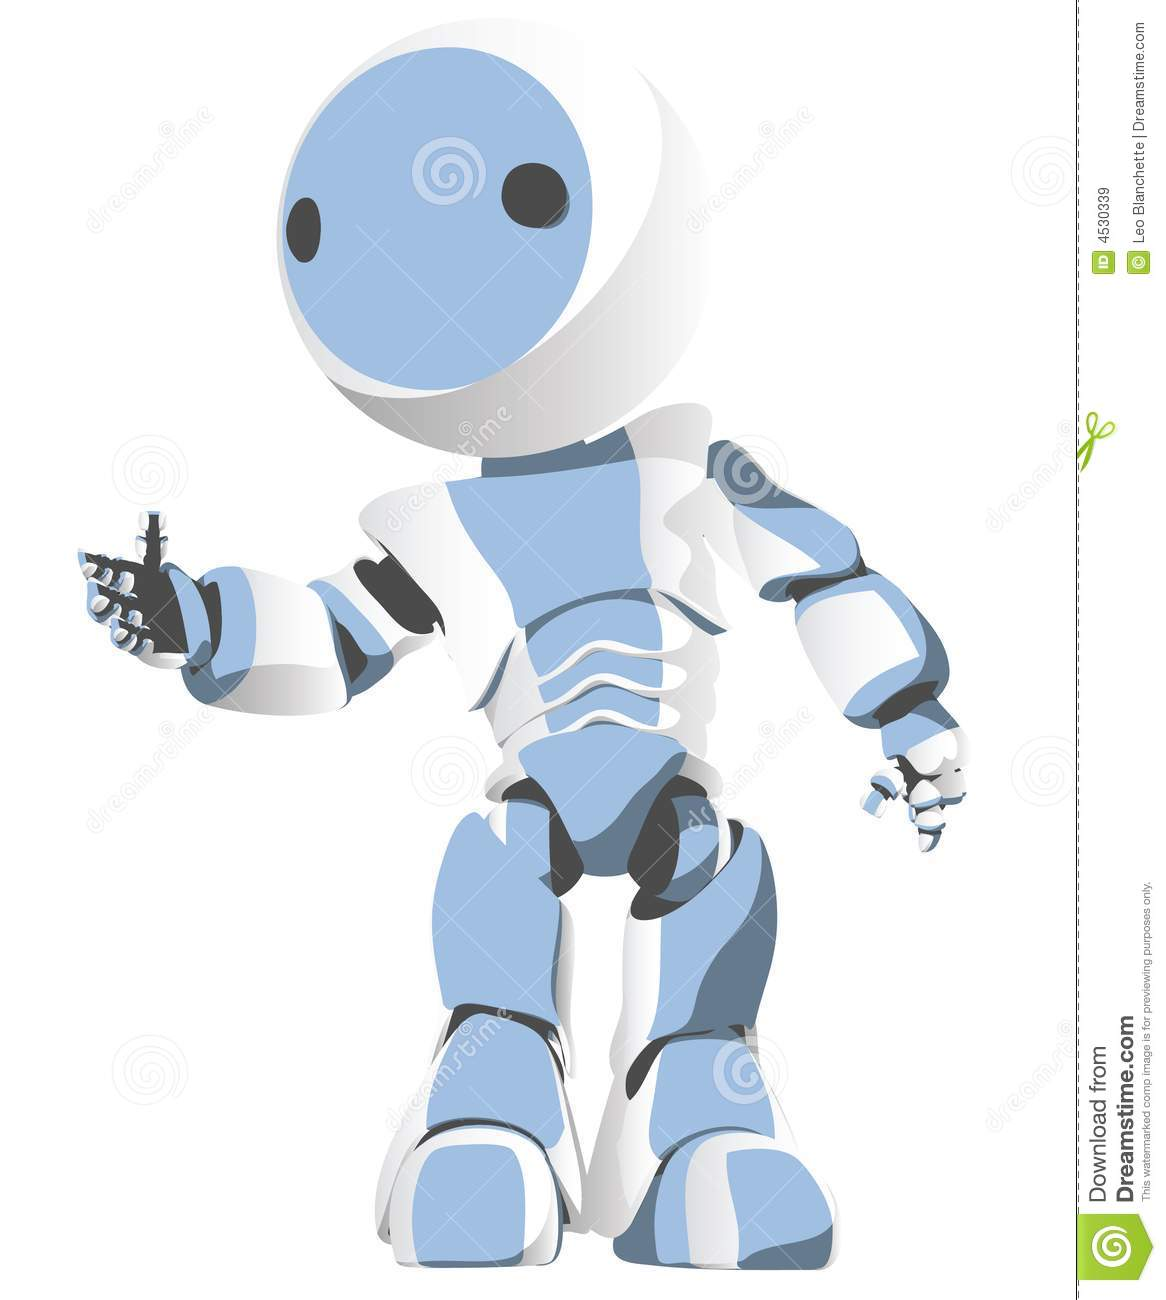 Cartoon Characters As Robots : Robot cartoon character stock vector illustration of